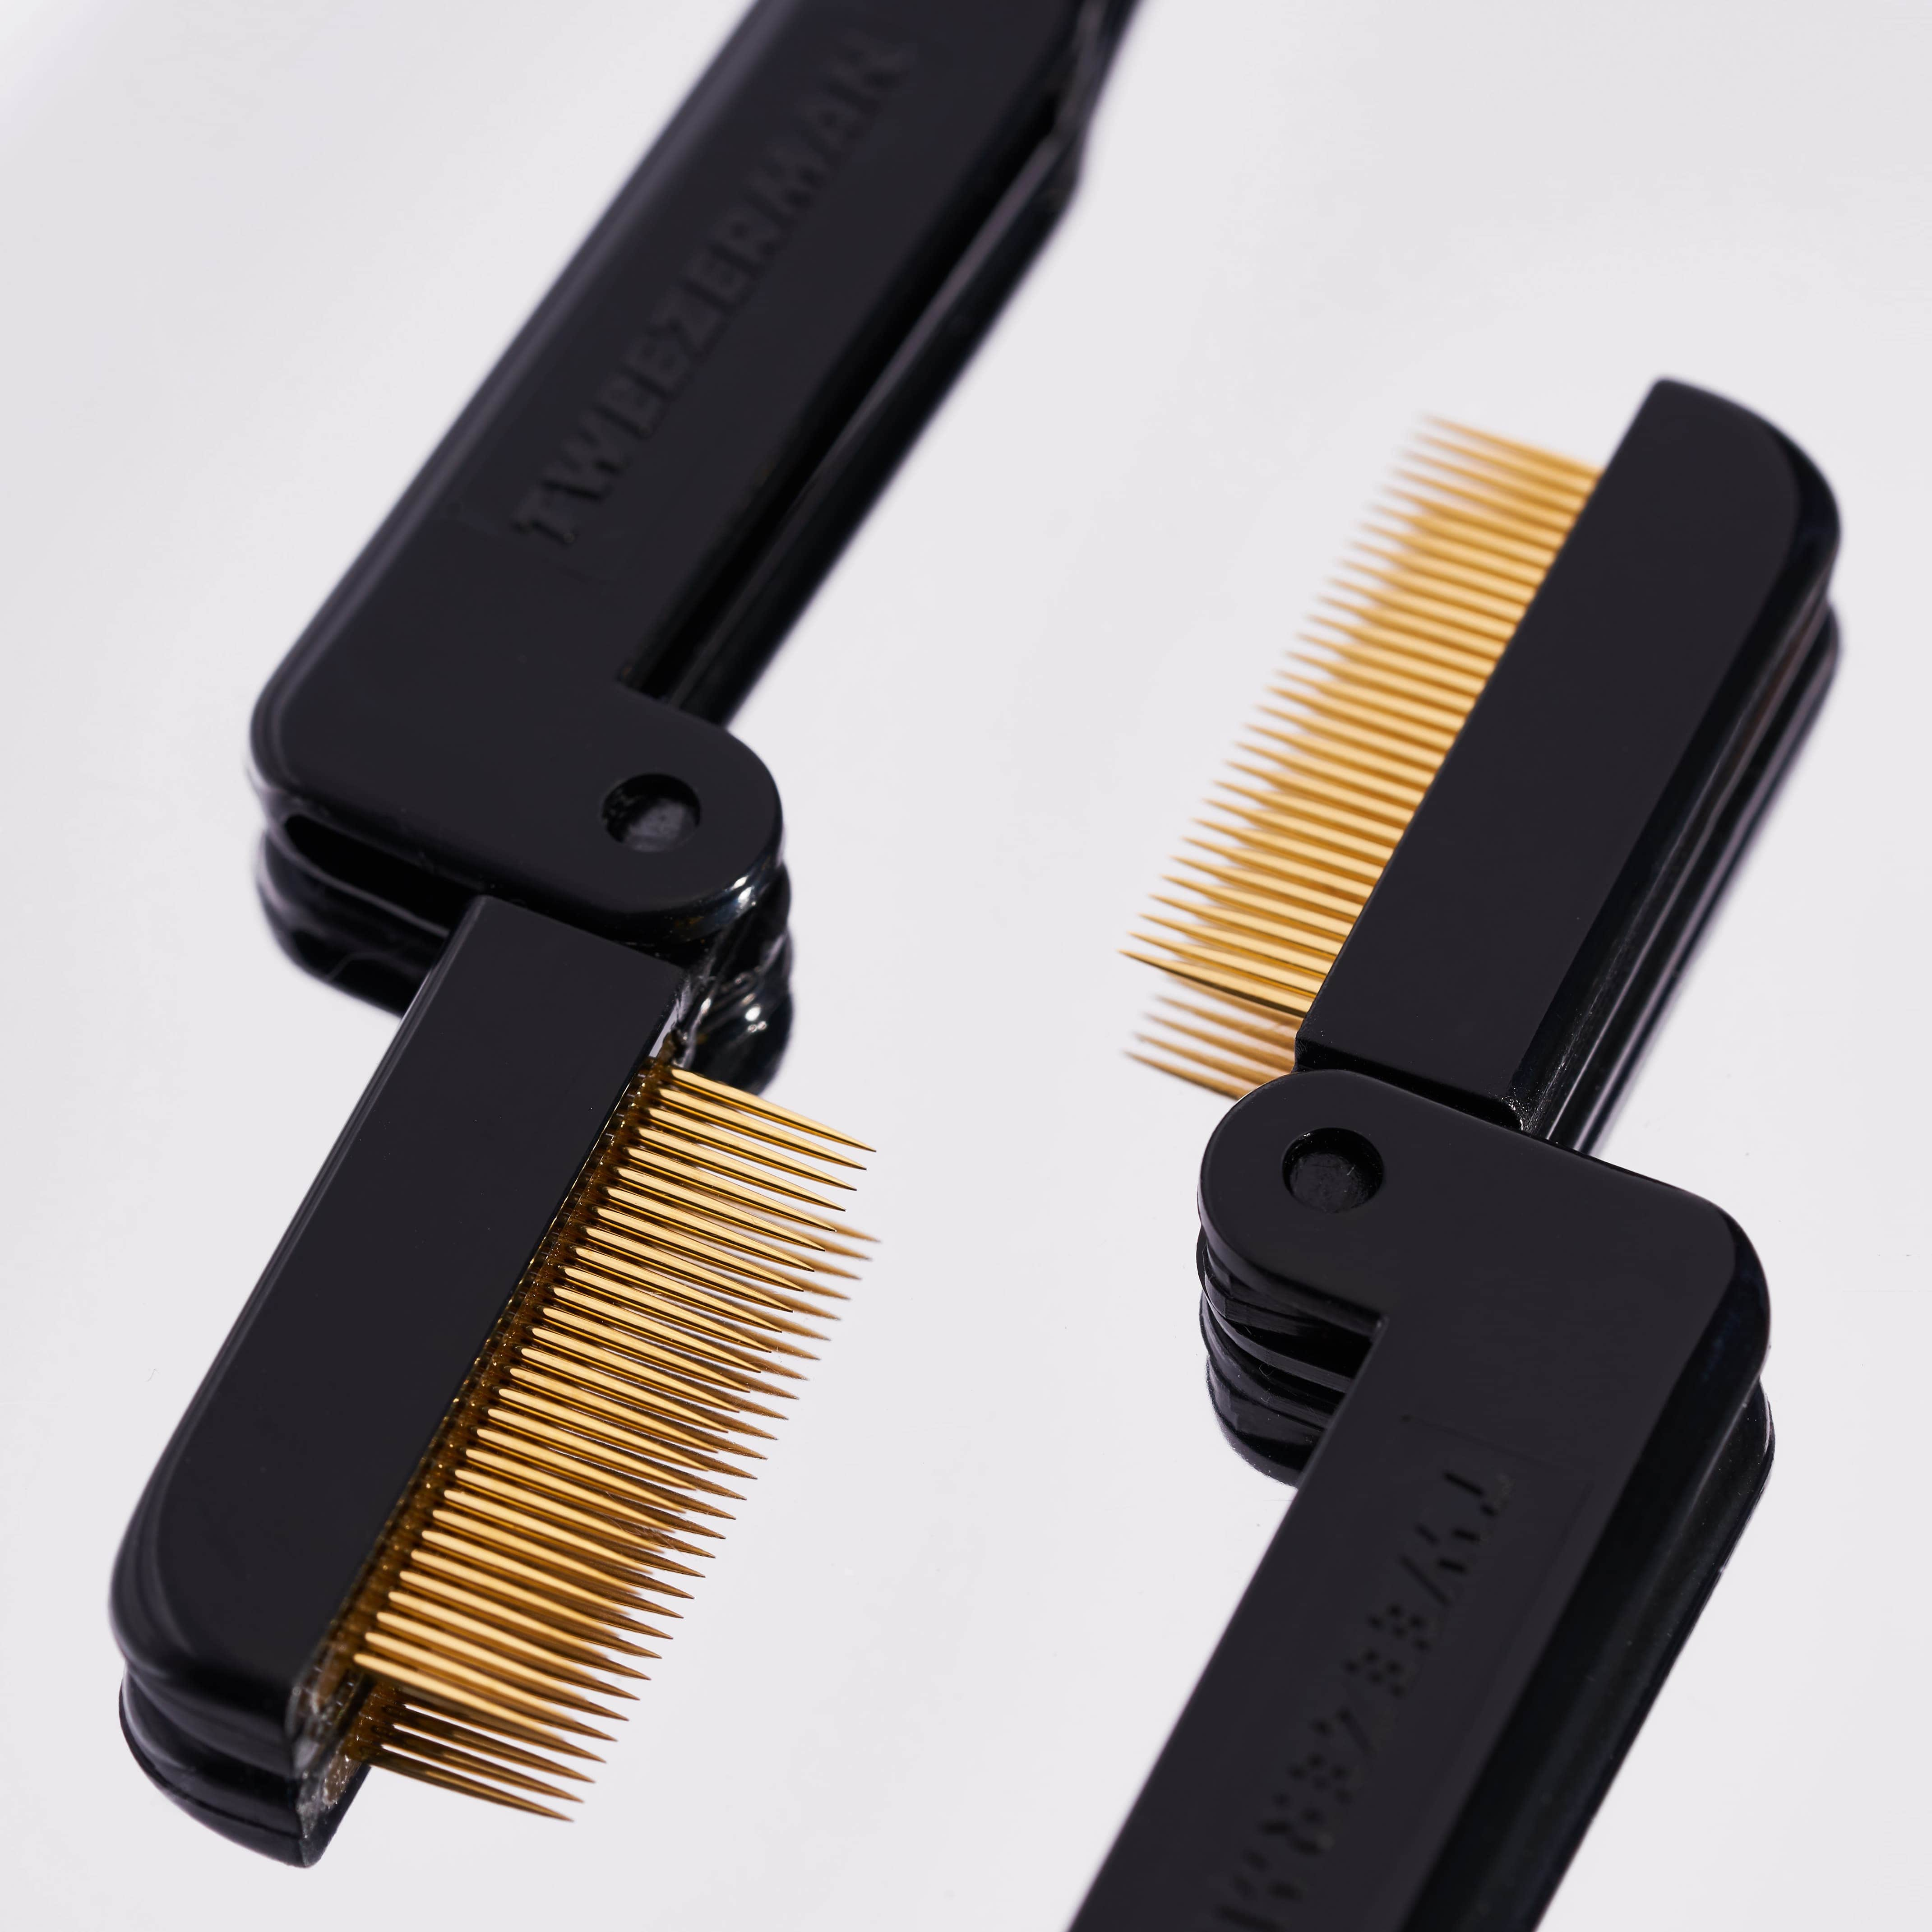 Folding iLashcomb Black